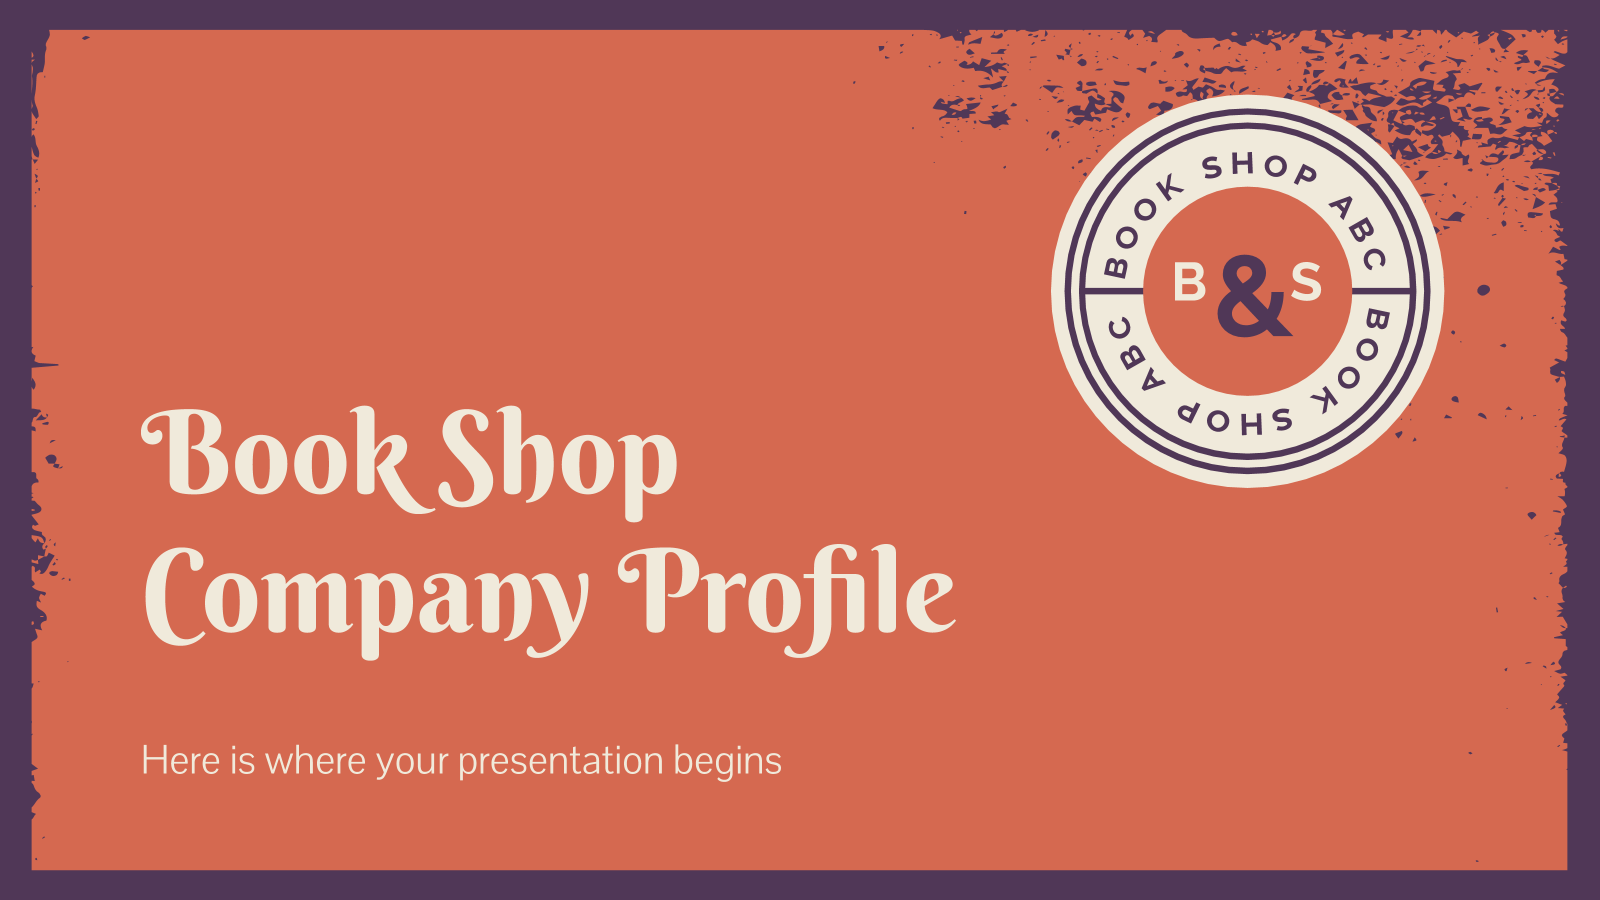 Book shop company profile presentation template